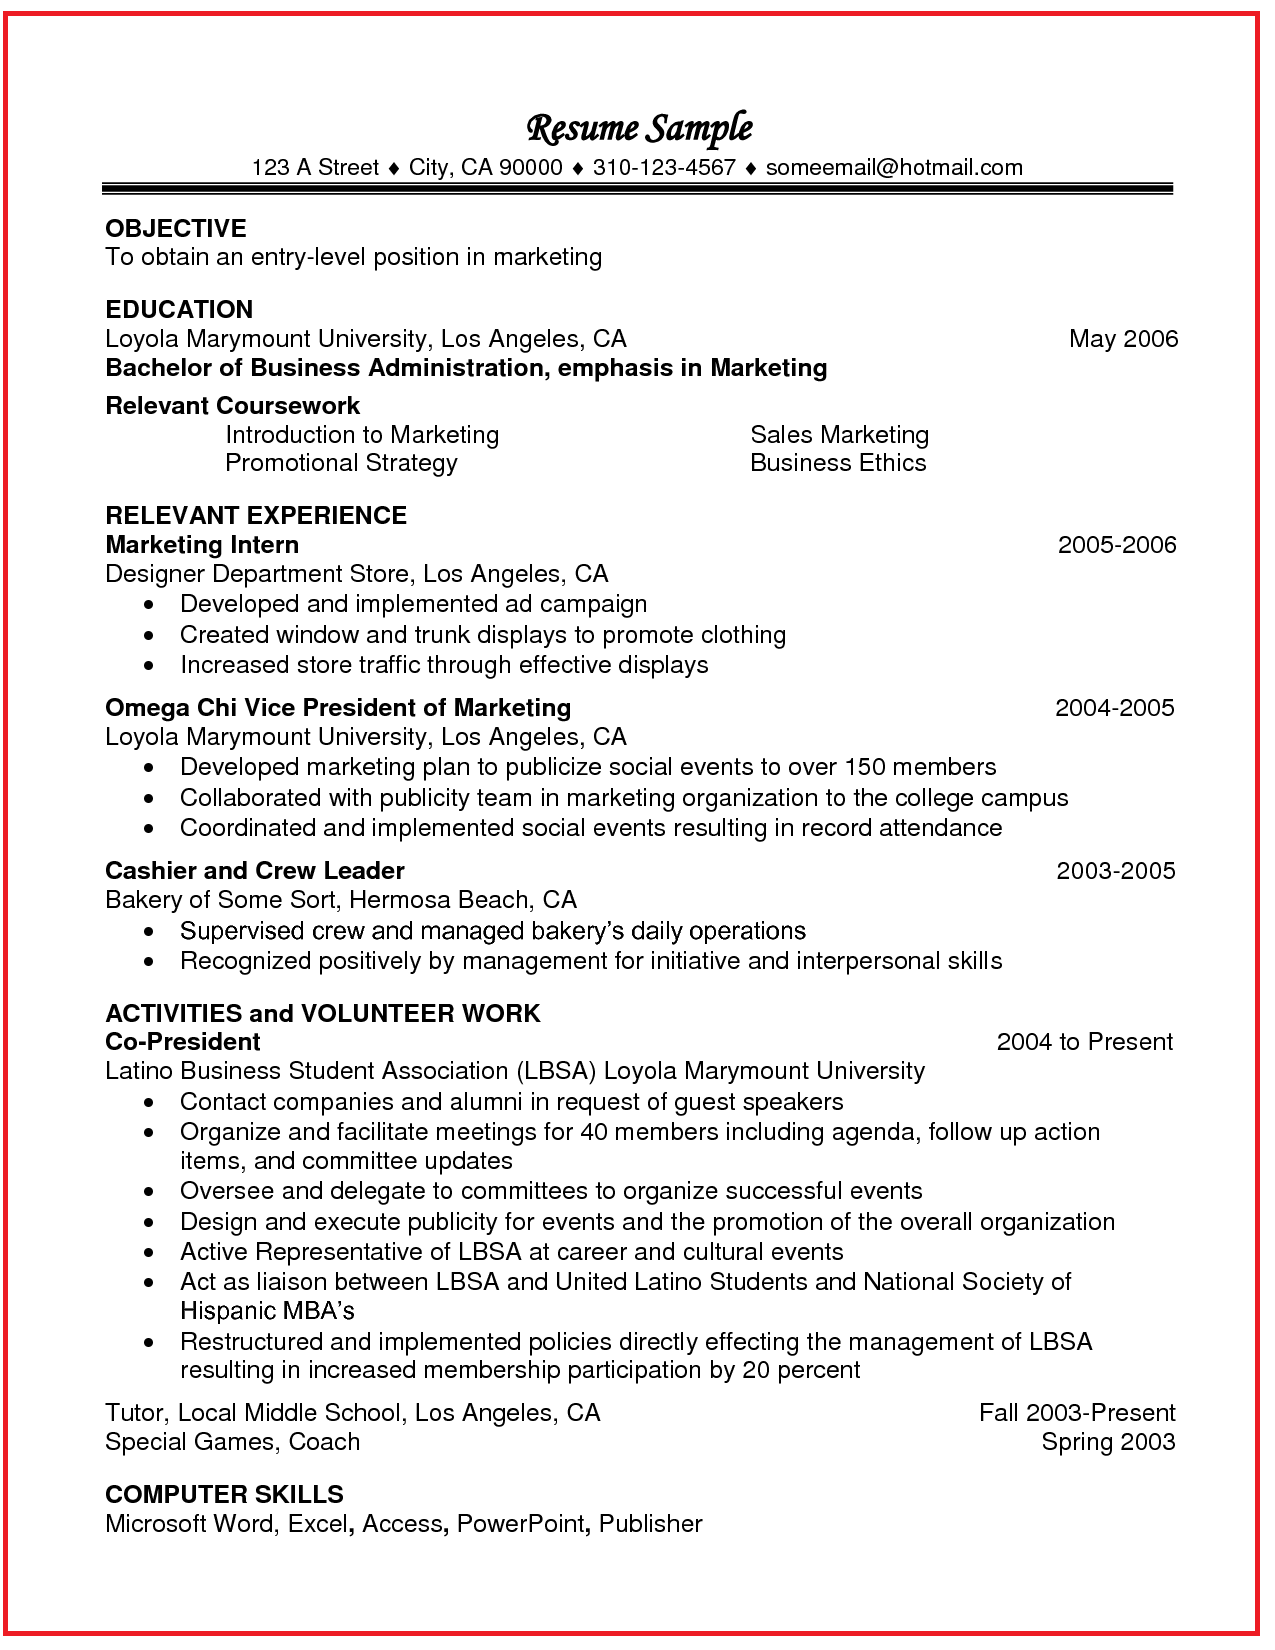 Pin by resumejob on Resume Job | Pinterest | Resume examples, Job ...